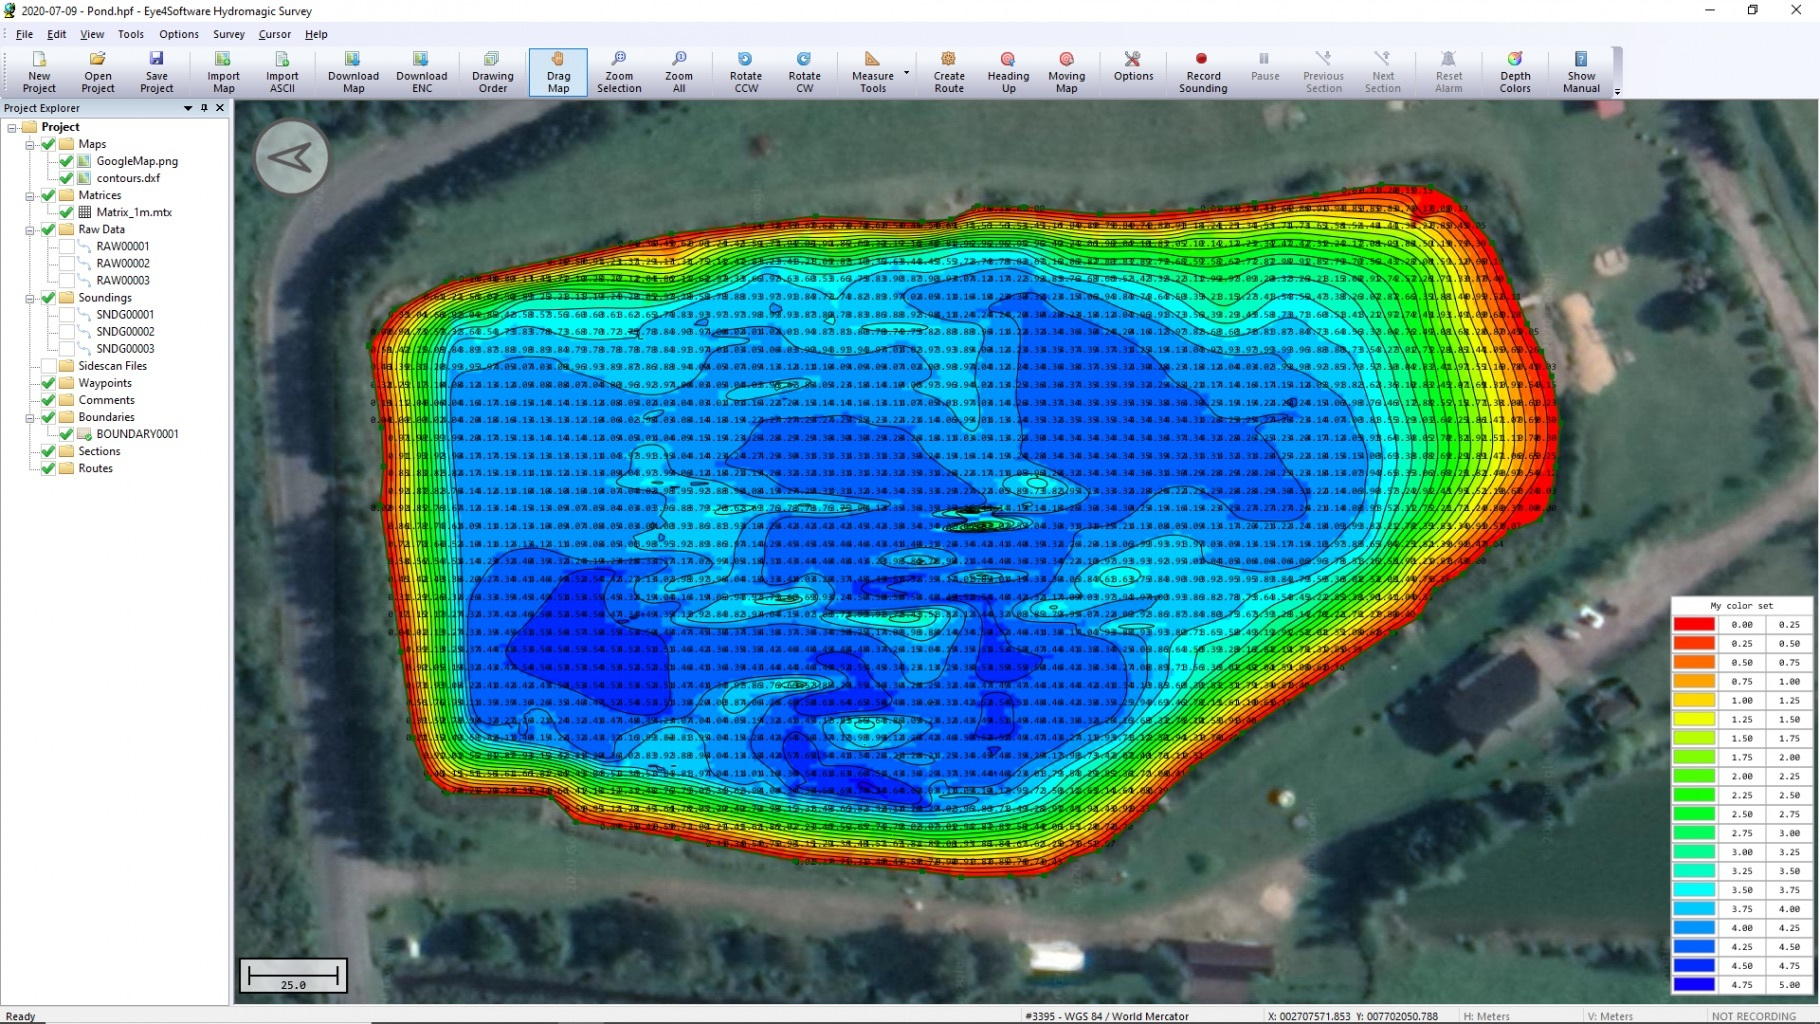 Colored depth map, bathymetric survey by drone equipped with echo sounder